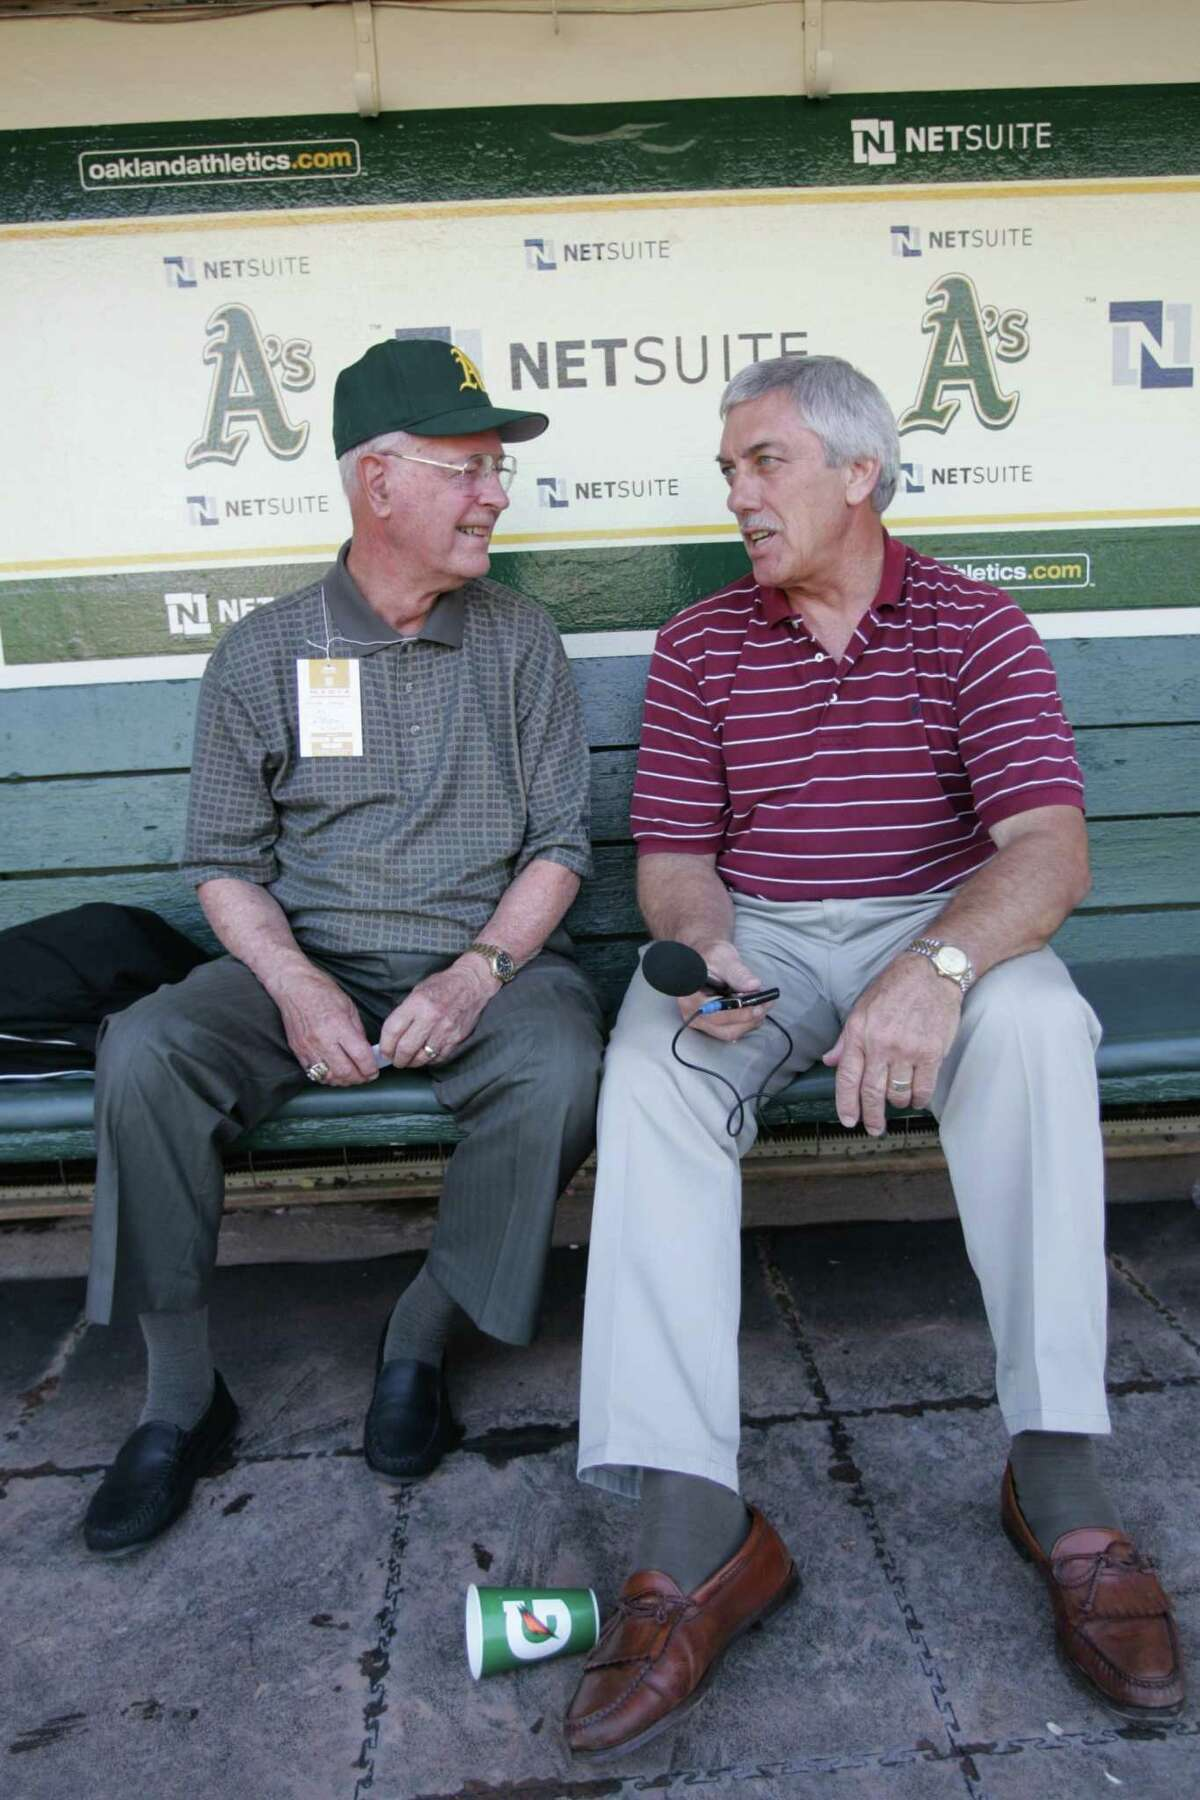 OAKLAND, CA - JUNE 23: Monte Moore and Ray Fosse in the dugout prior to the Oakland Athletics game against the San Francisco Giants at the Oakland Coliseum on June 23, 2009 in Oakland, California. The Giants defeated the Athletics 4-1. (Photo by Michael Zagaris/Getty Images)